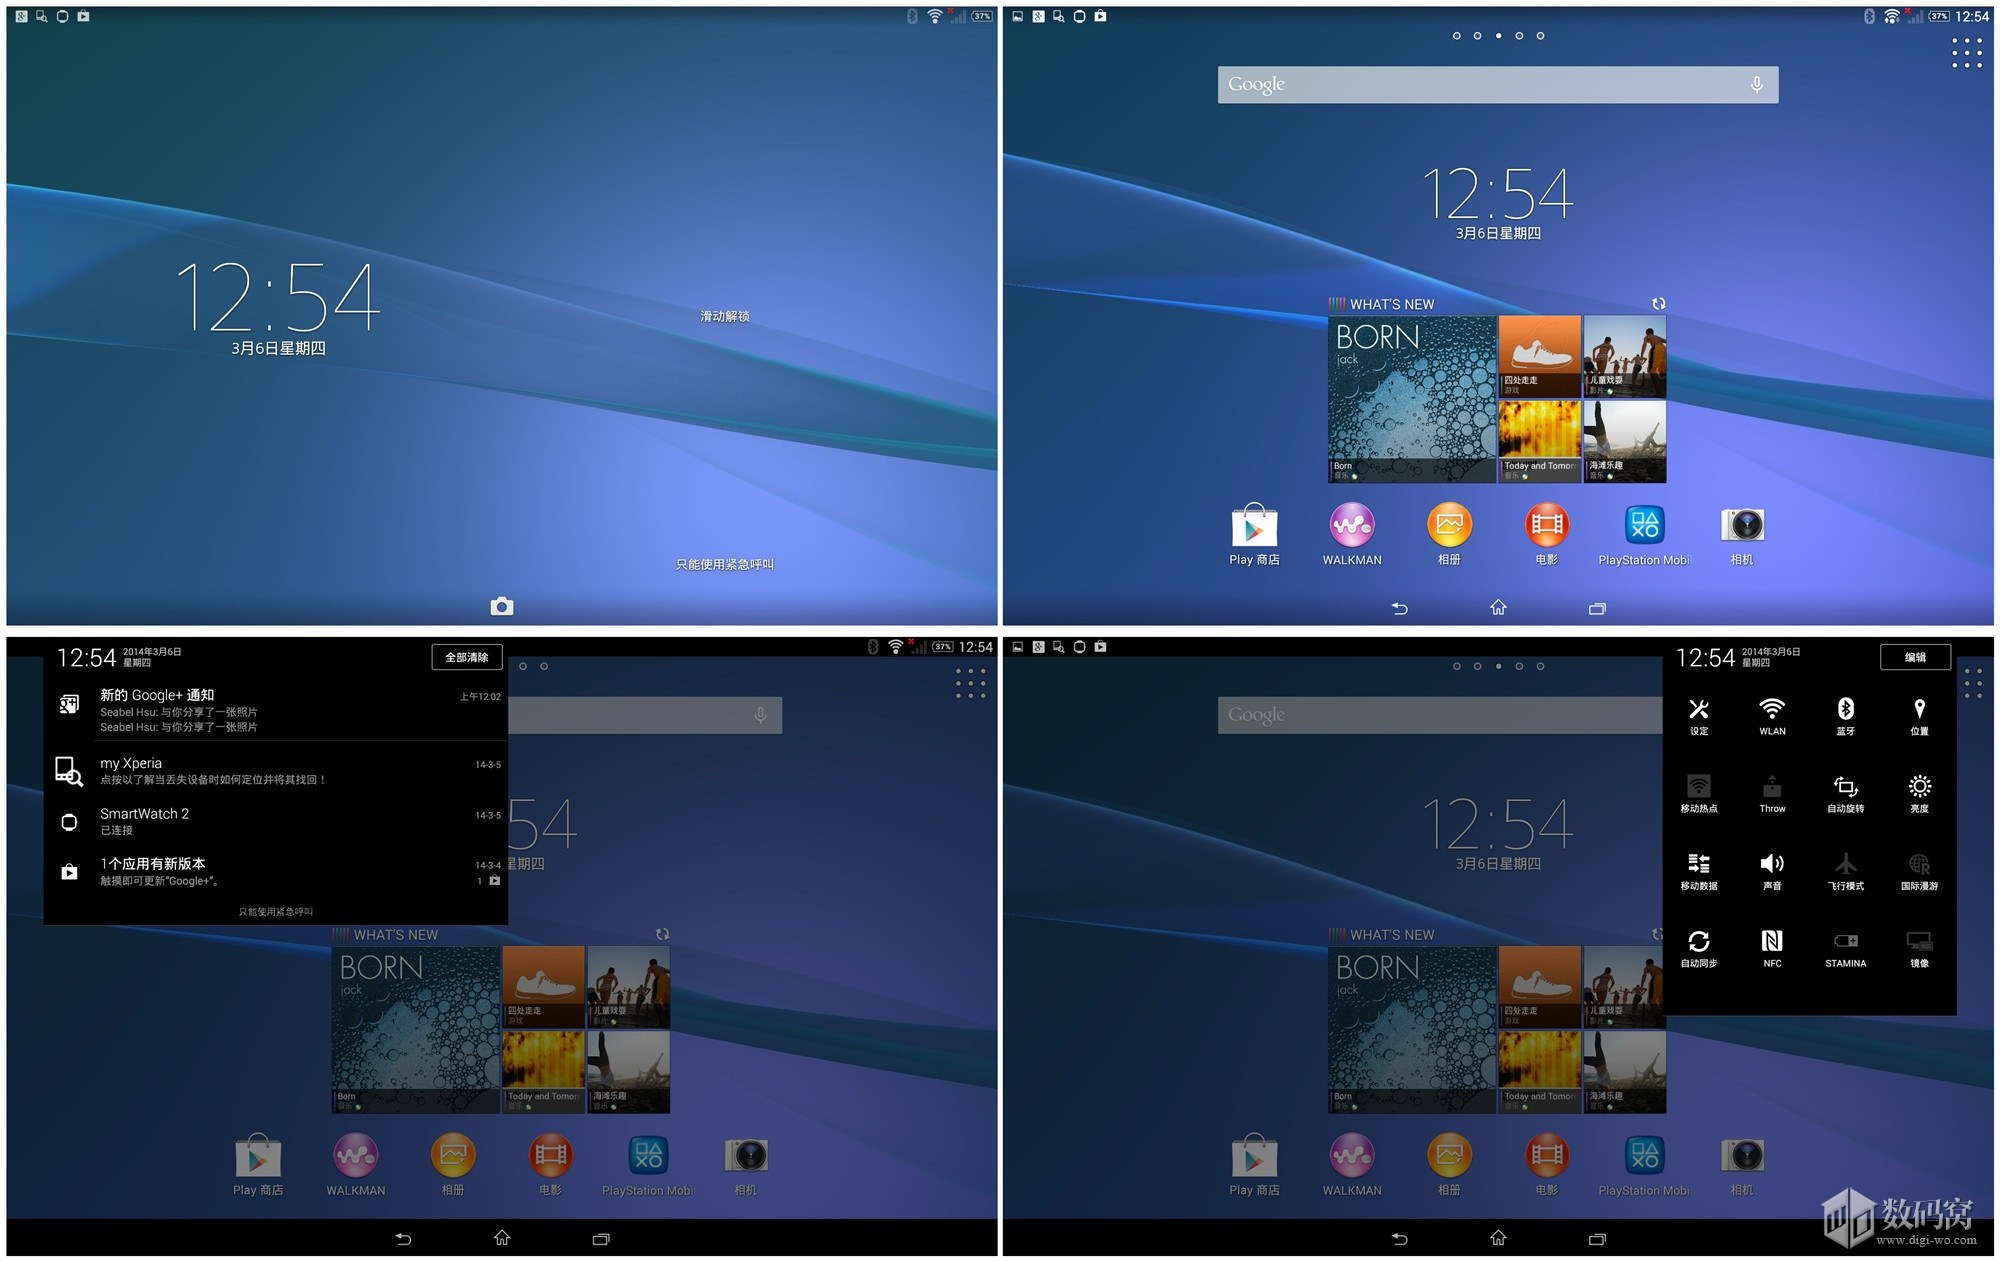 Xperia Z2 Tablet KitKat themes and UI